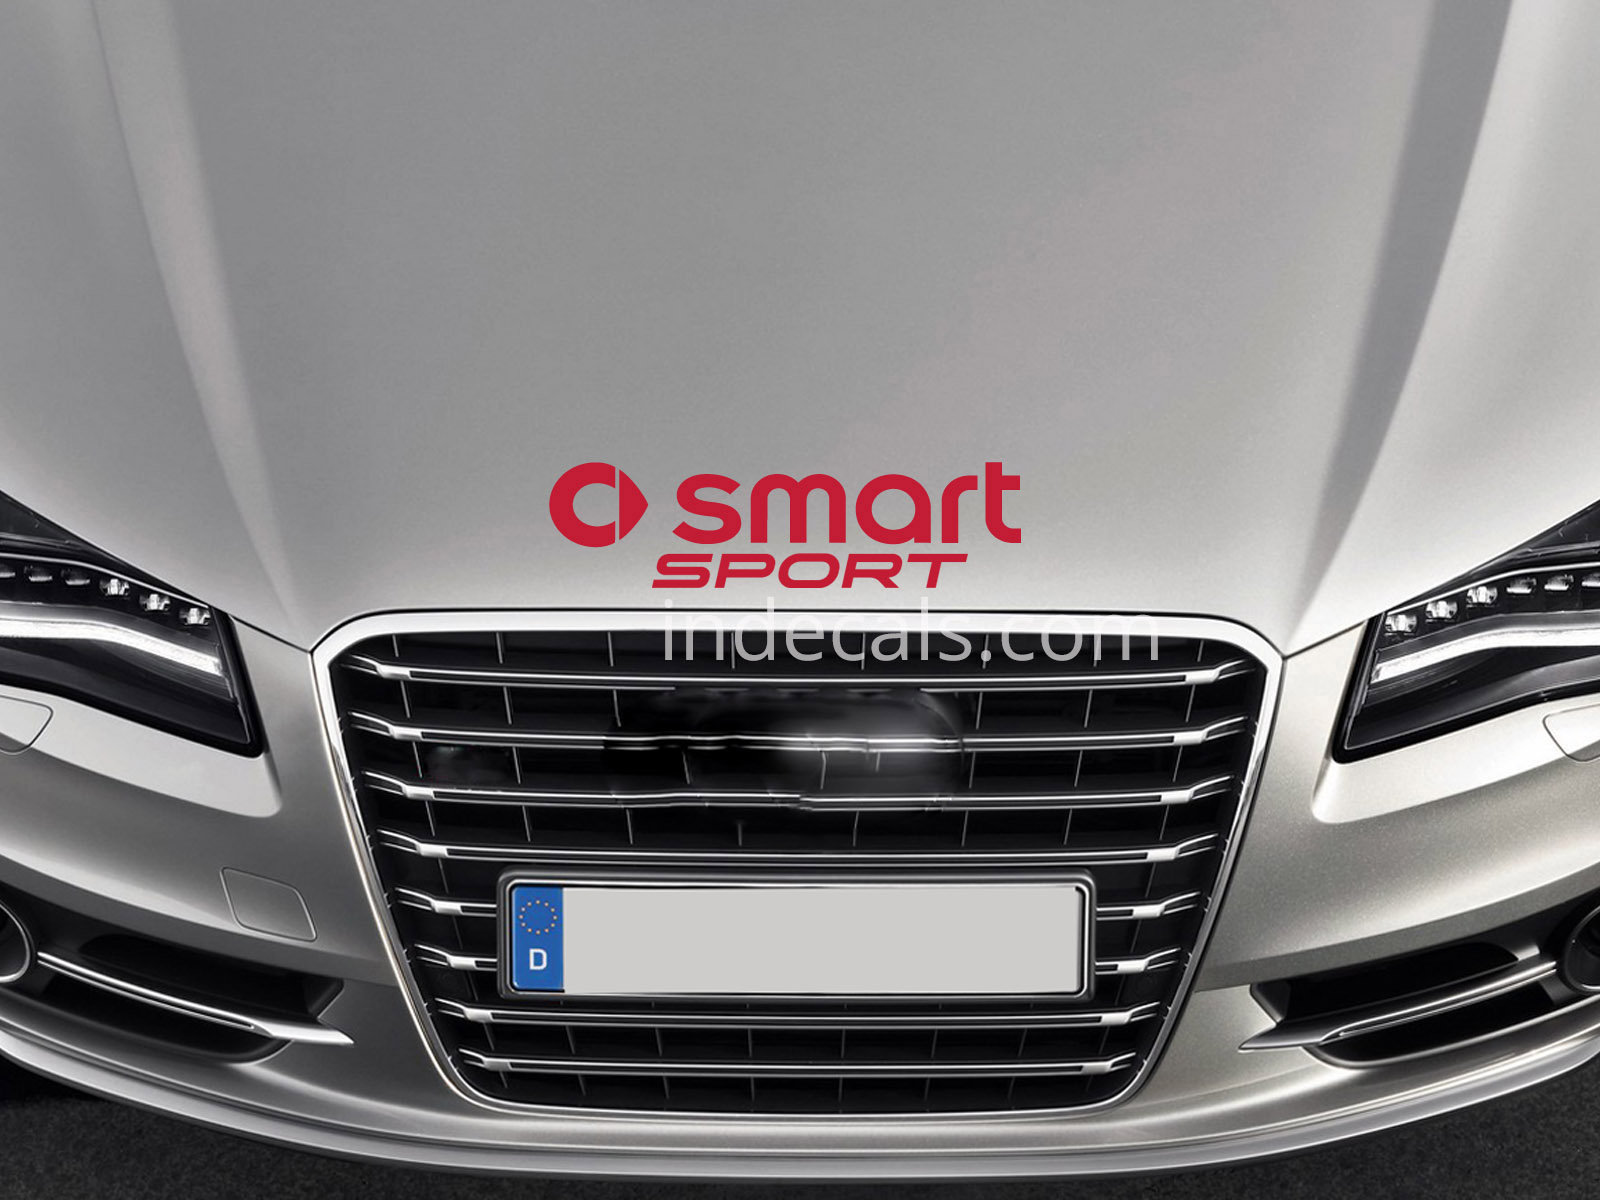 1 x Smart Performance Sticker for Bonnet - Red